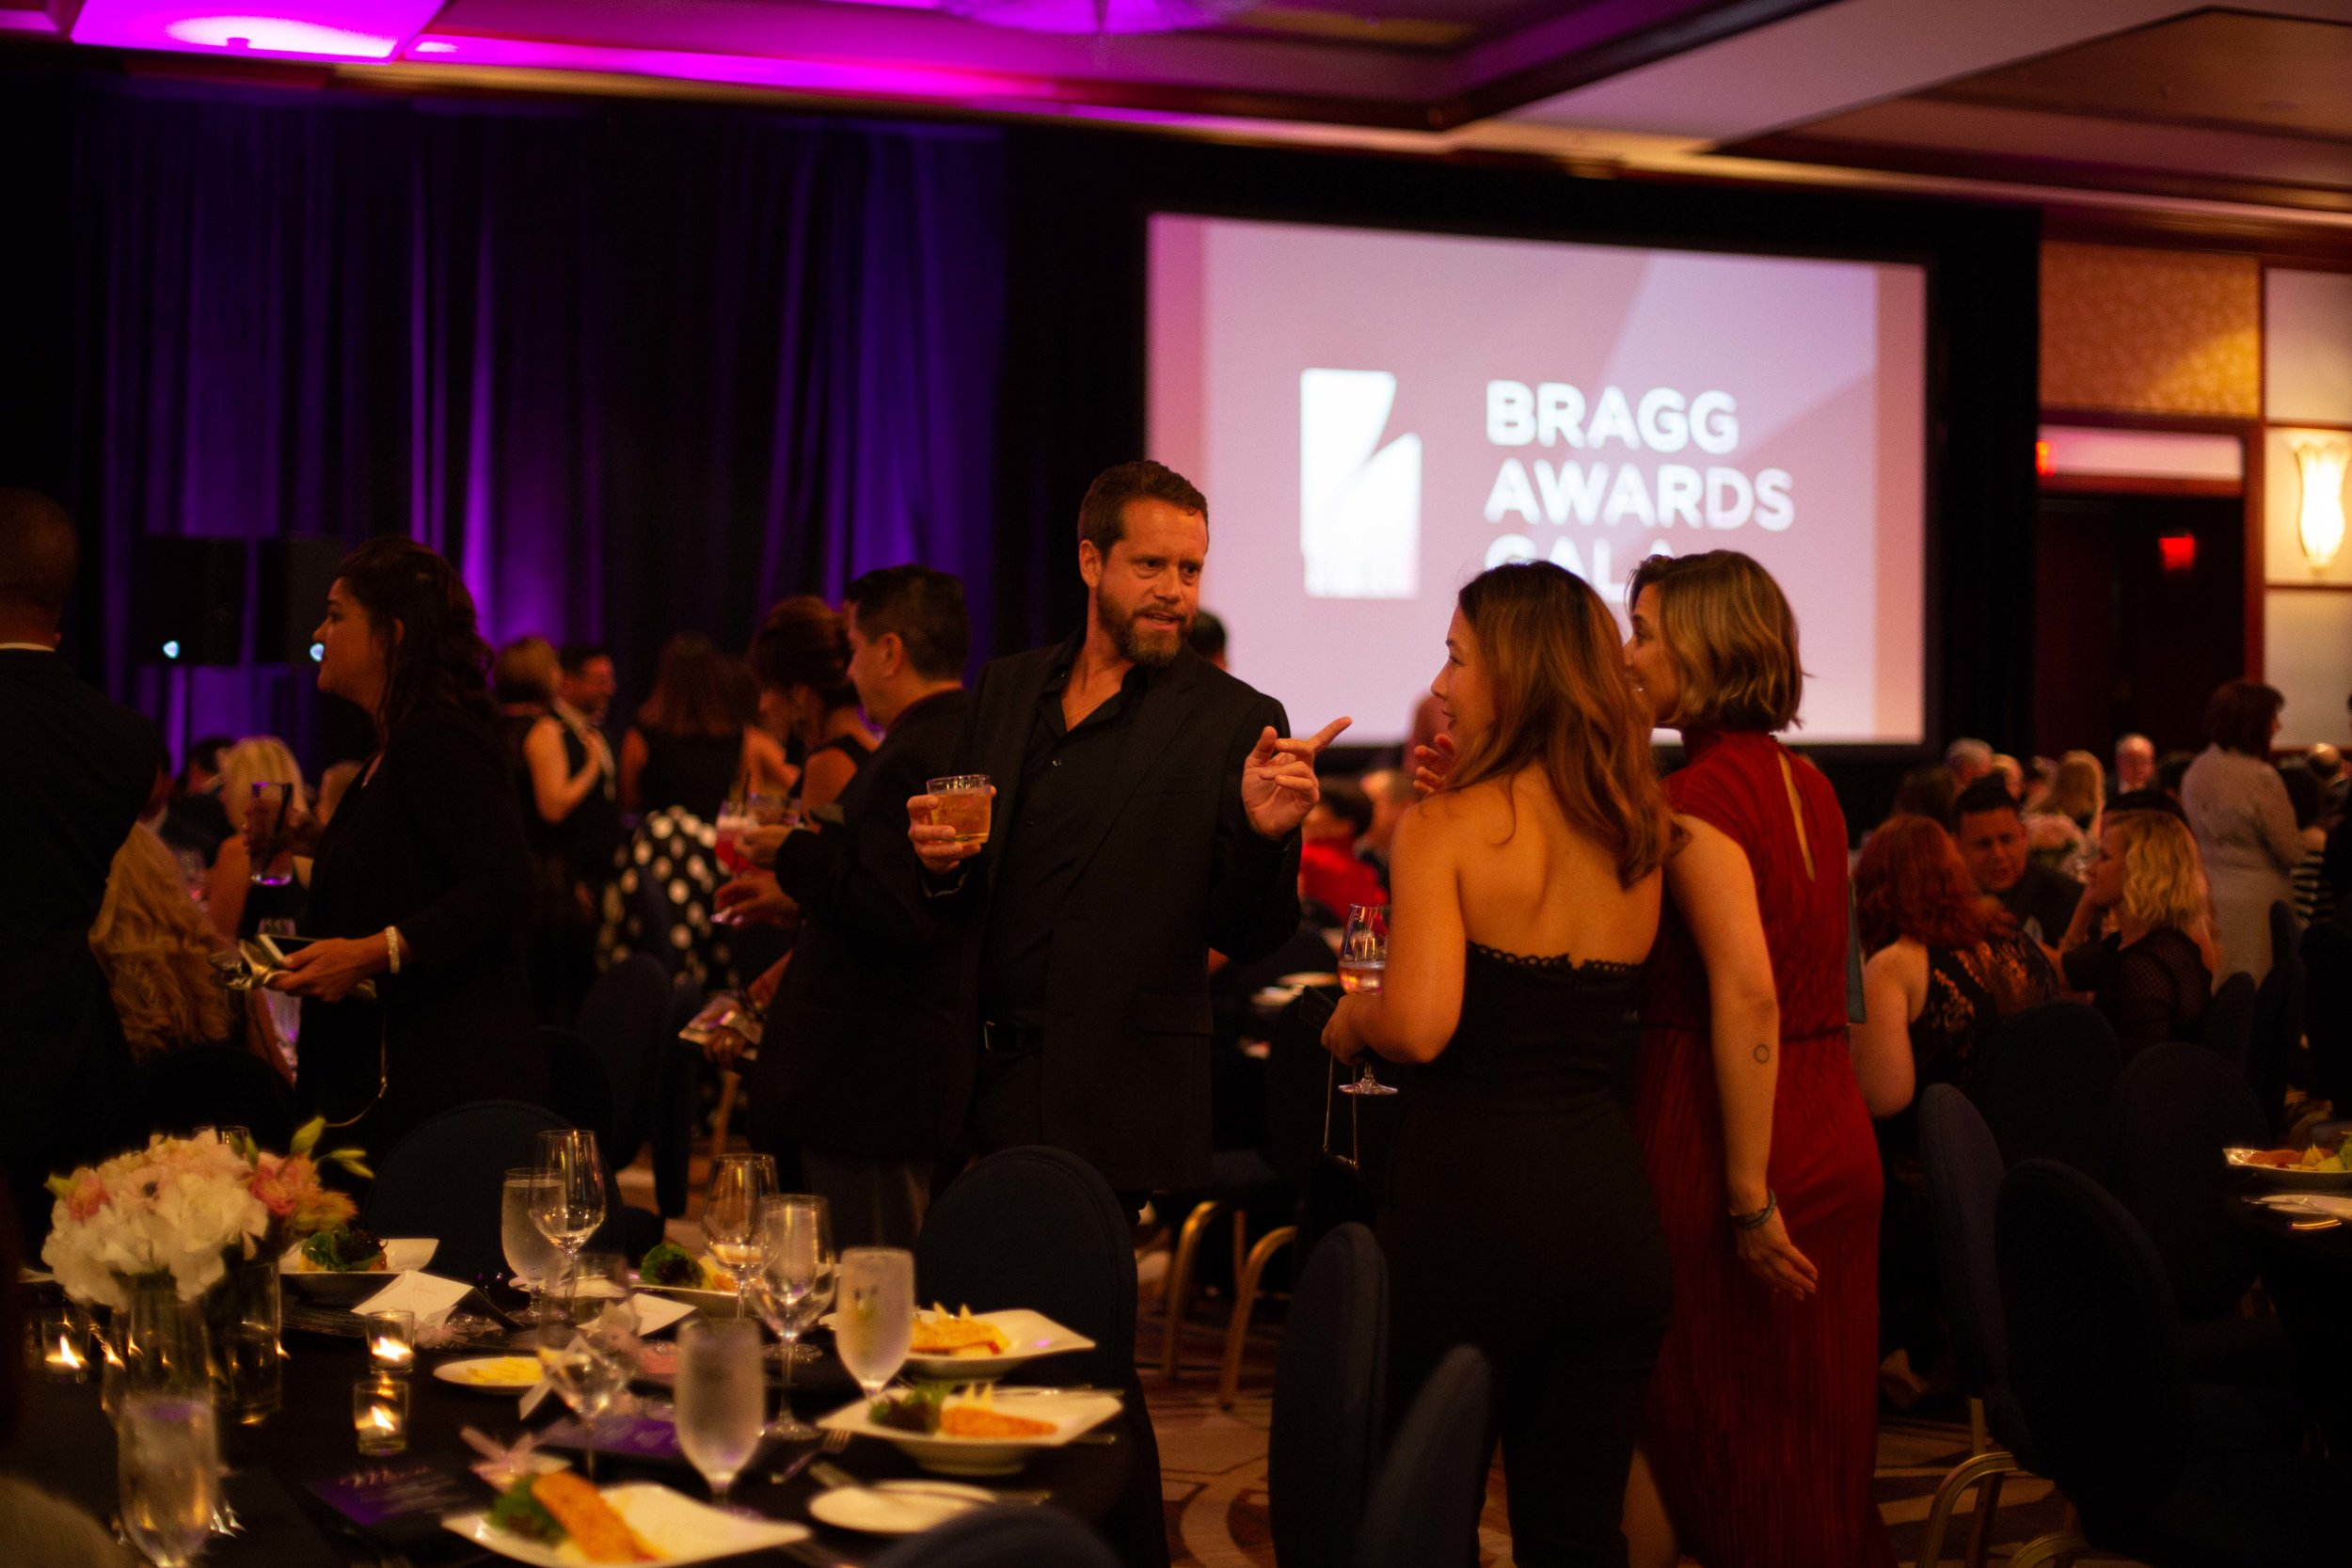 Bragg-Awards-2018-2-10.jpg